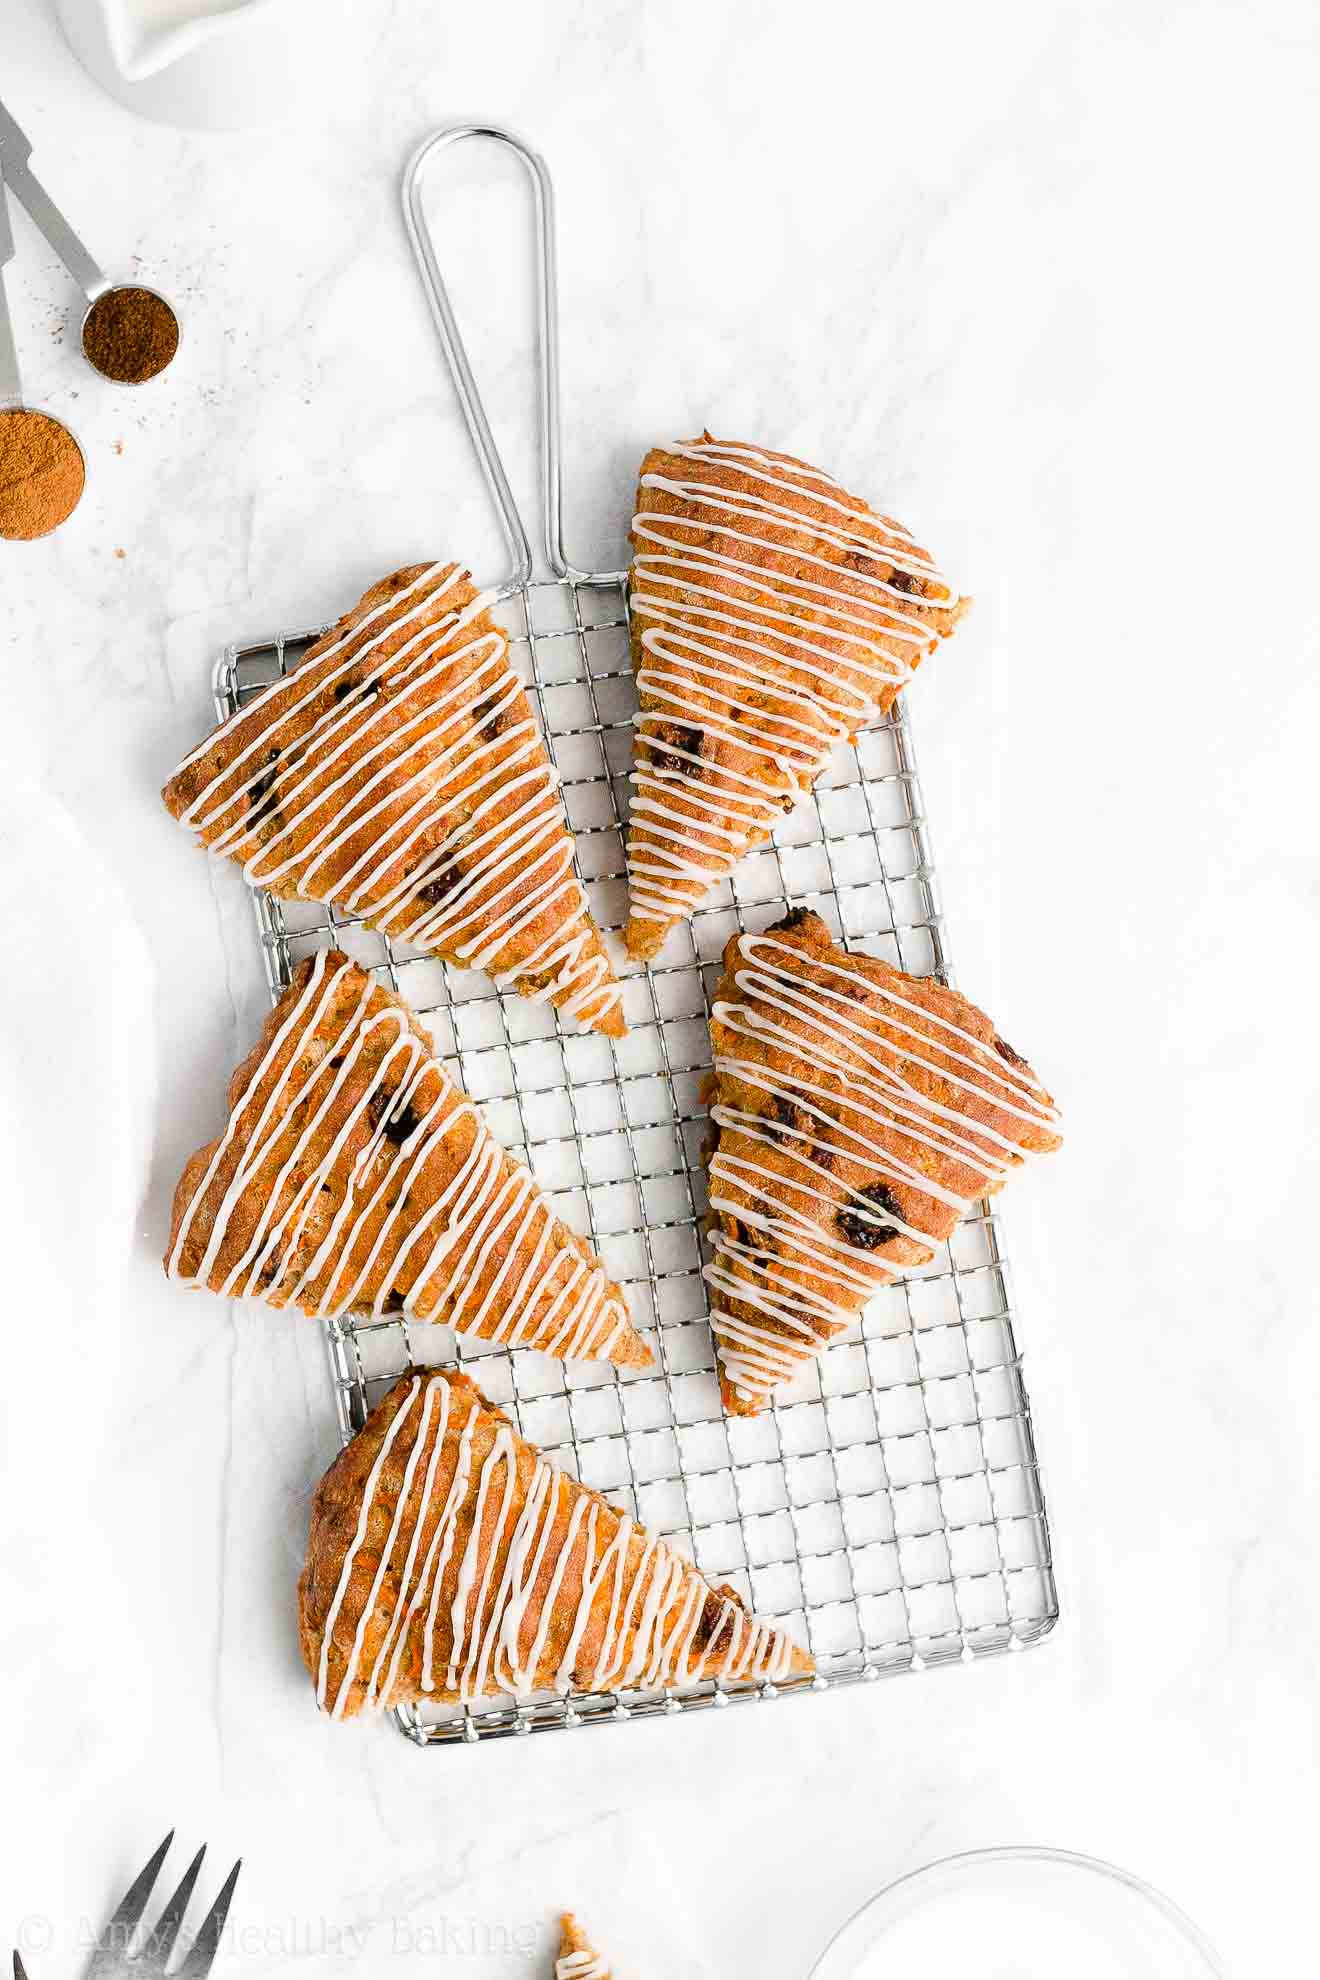 Easy Healthy Gluten Free Low Calorie Low Fat Chai Spice Carrot Raisin Scones